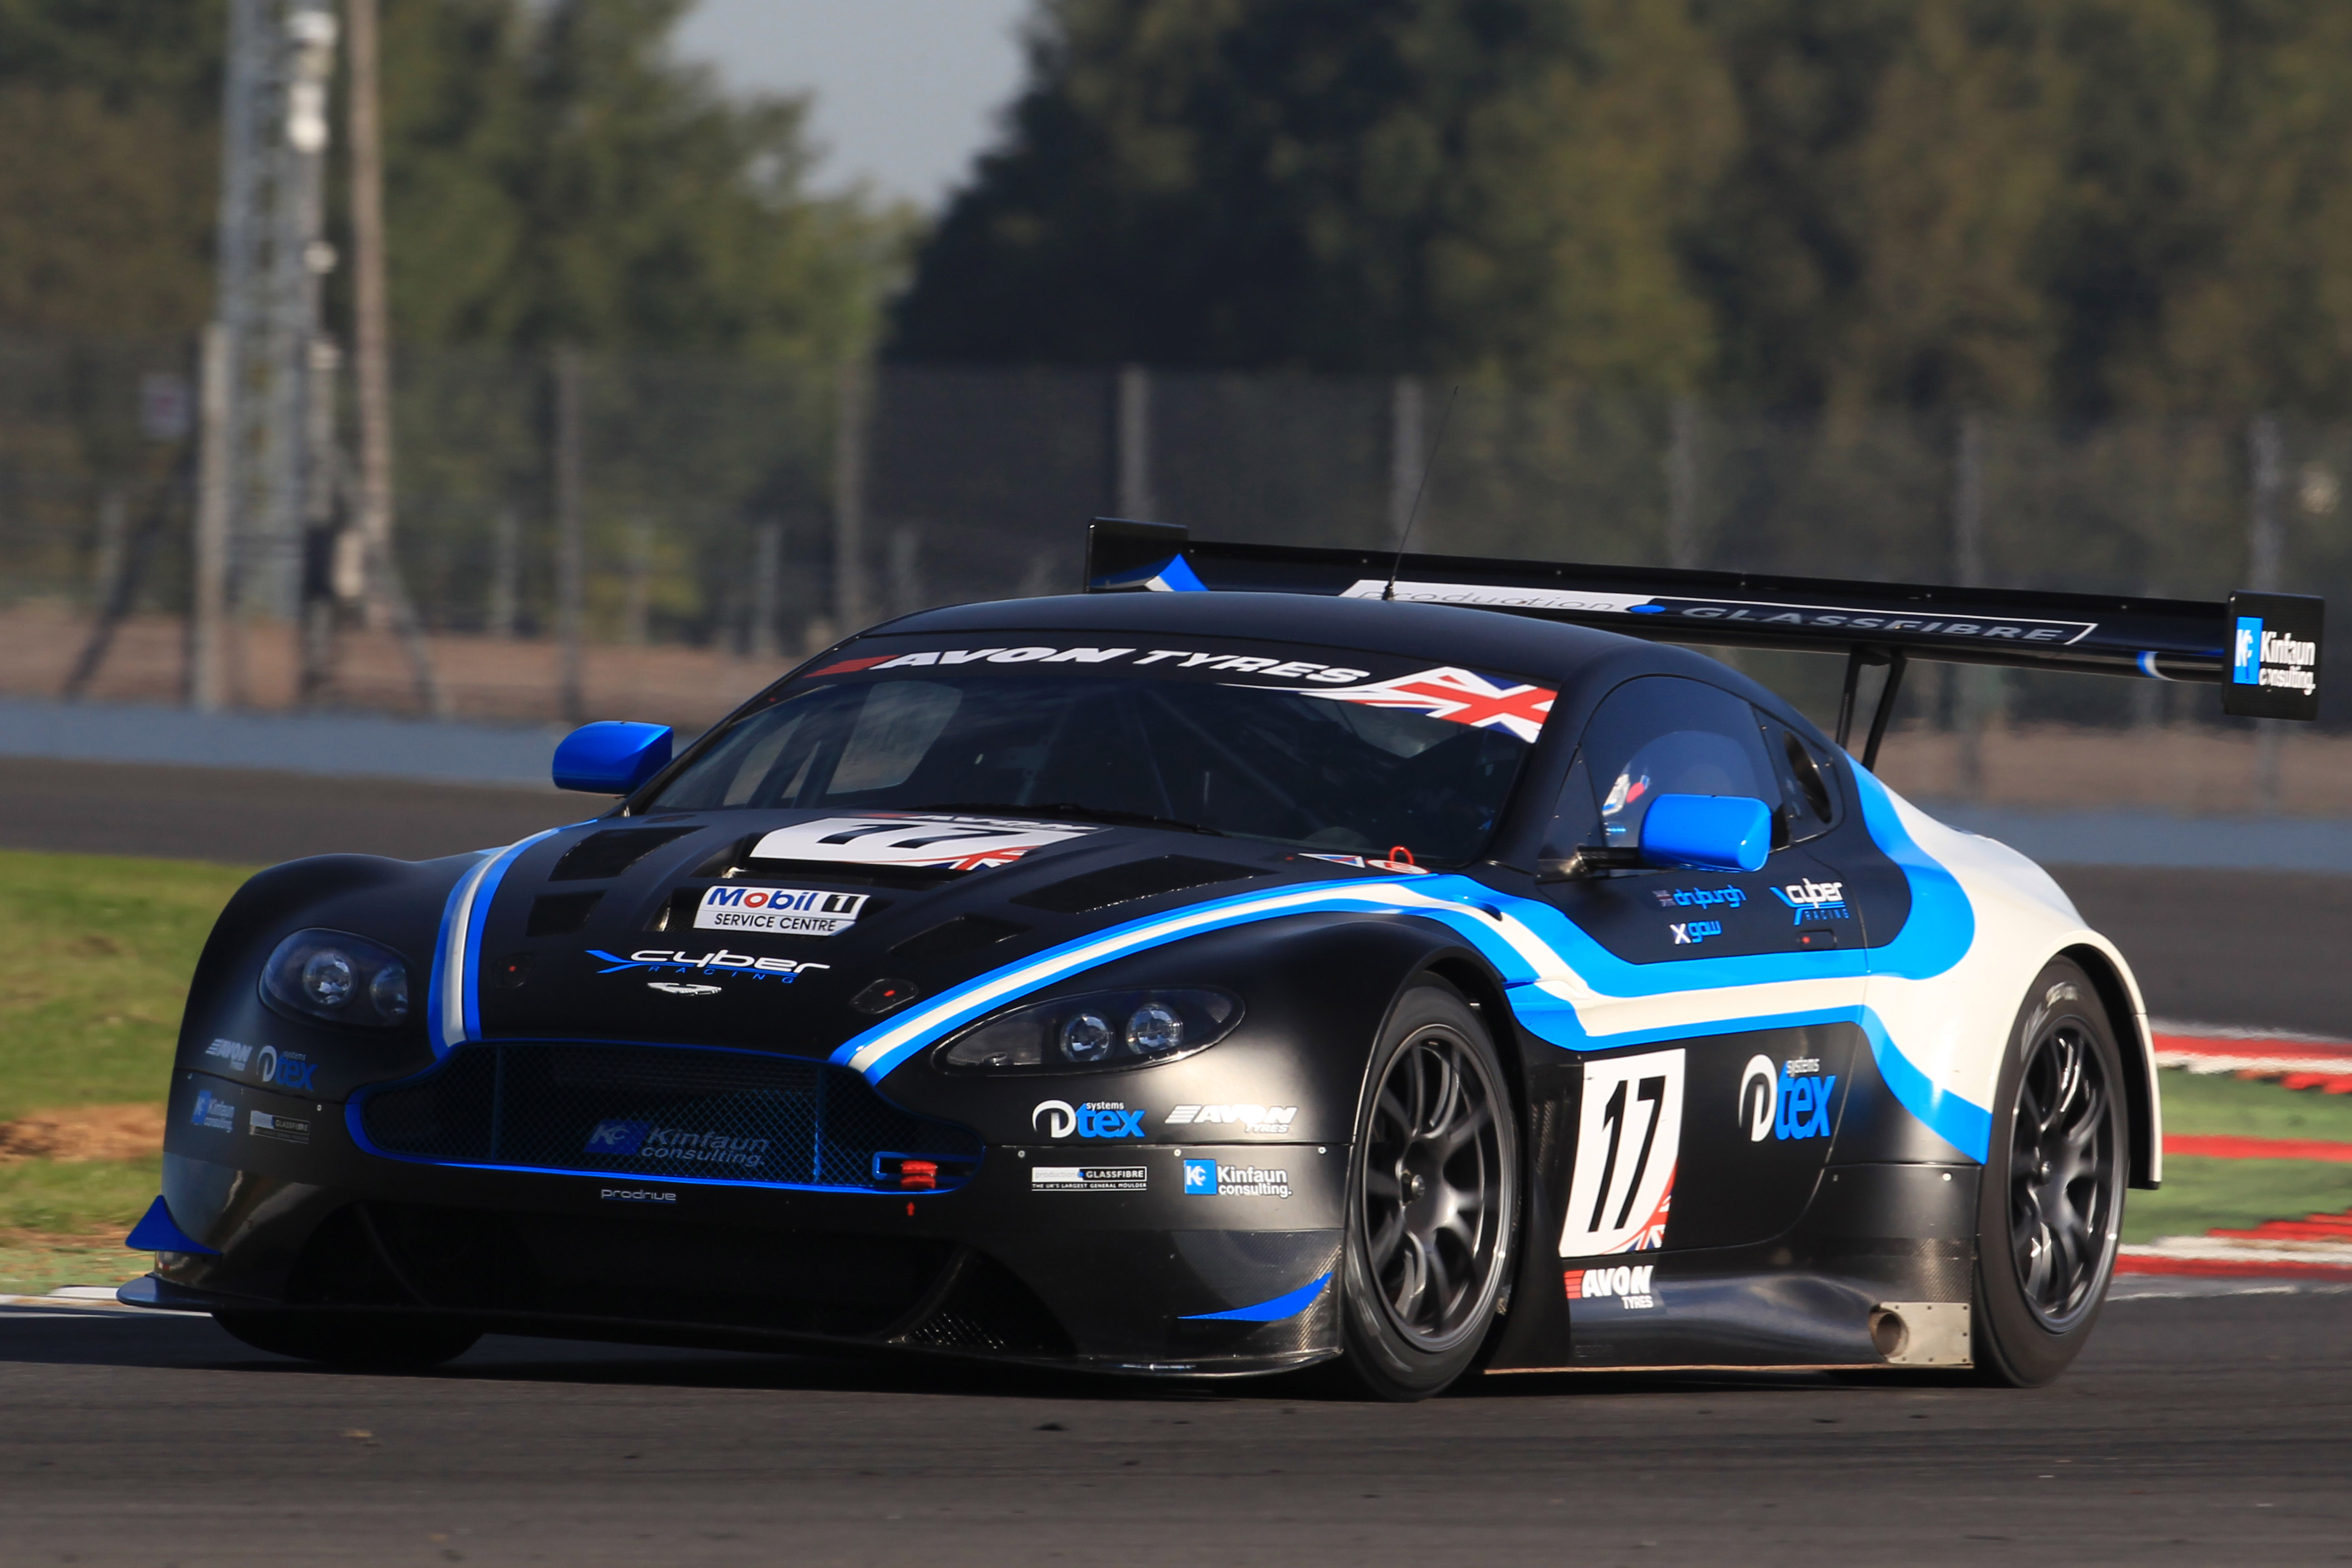 Bgt Pgf Kinfaun Amr Add Yet Another Aston To The 2013 Grid Motor Sport Press